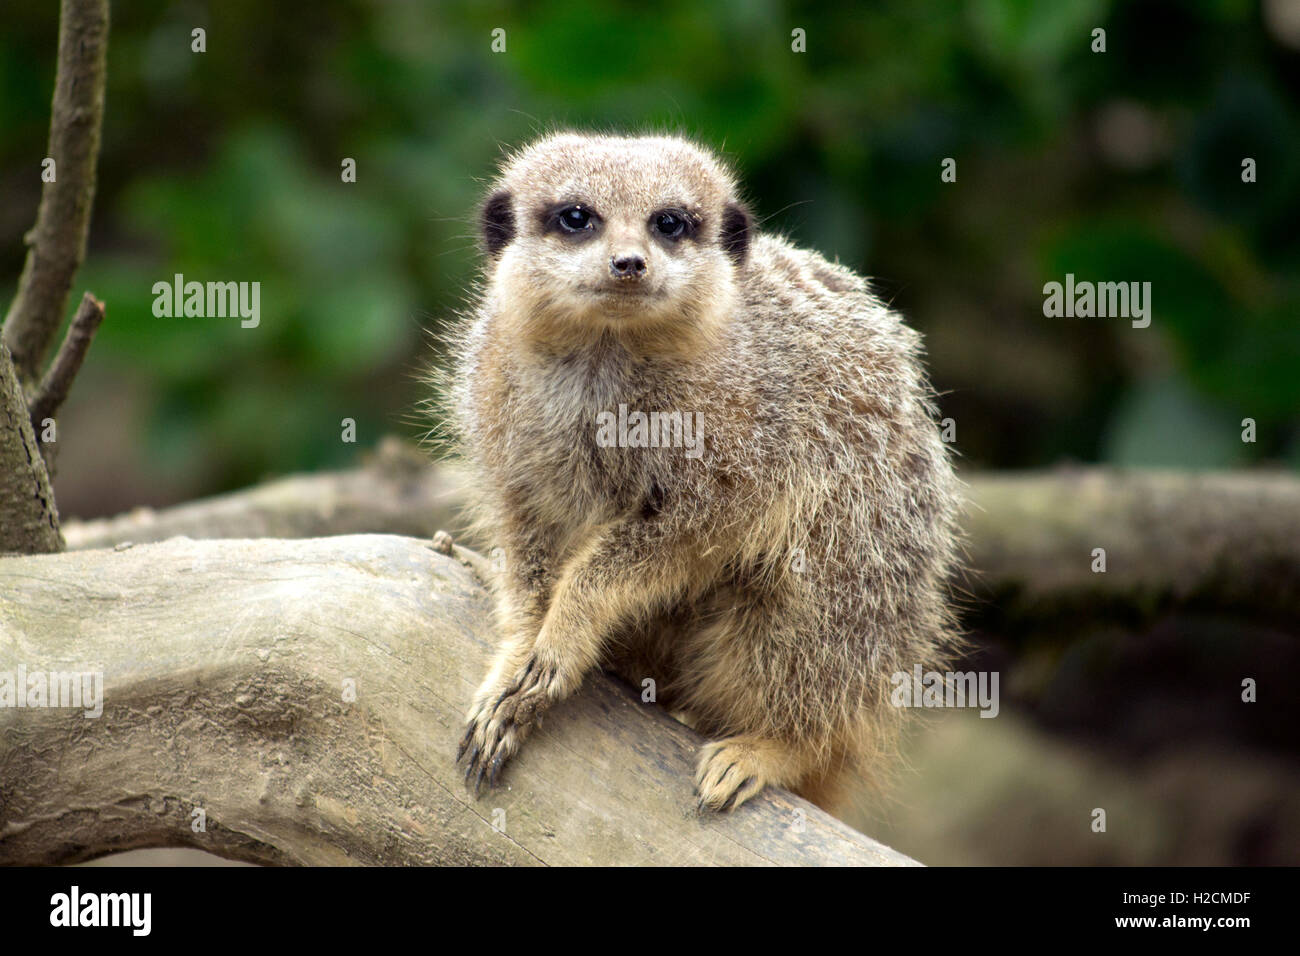 A small Meercat sitting on the branch of a tree, looking into the lens. - Stock Image